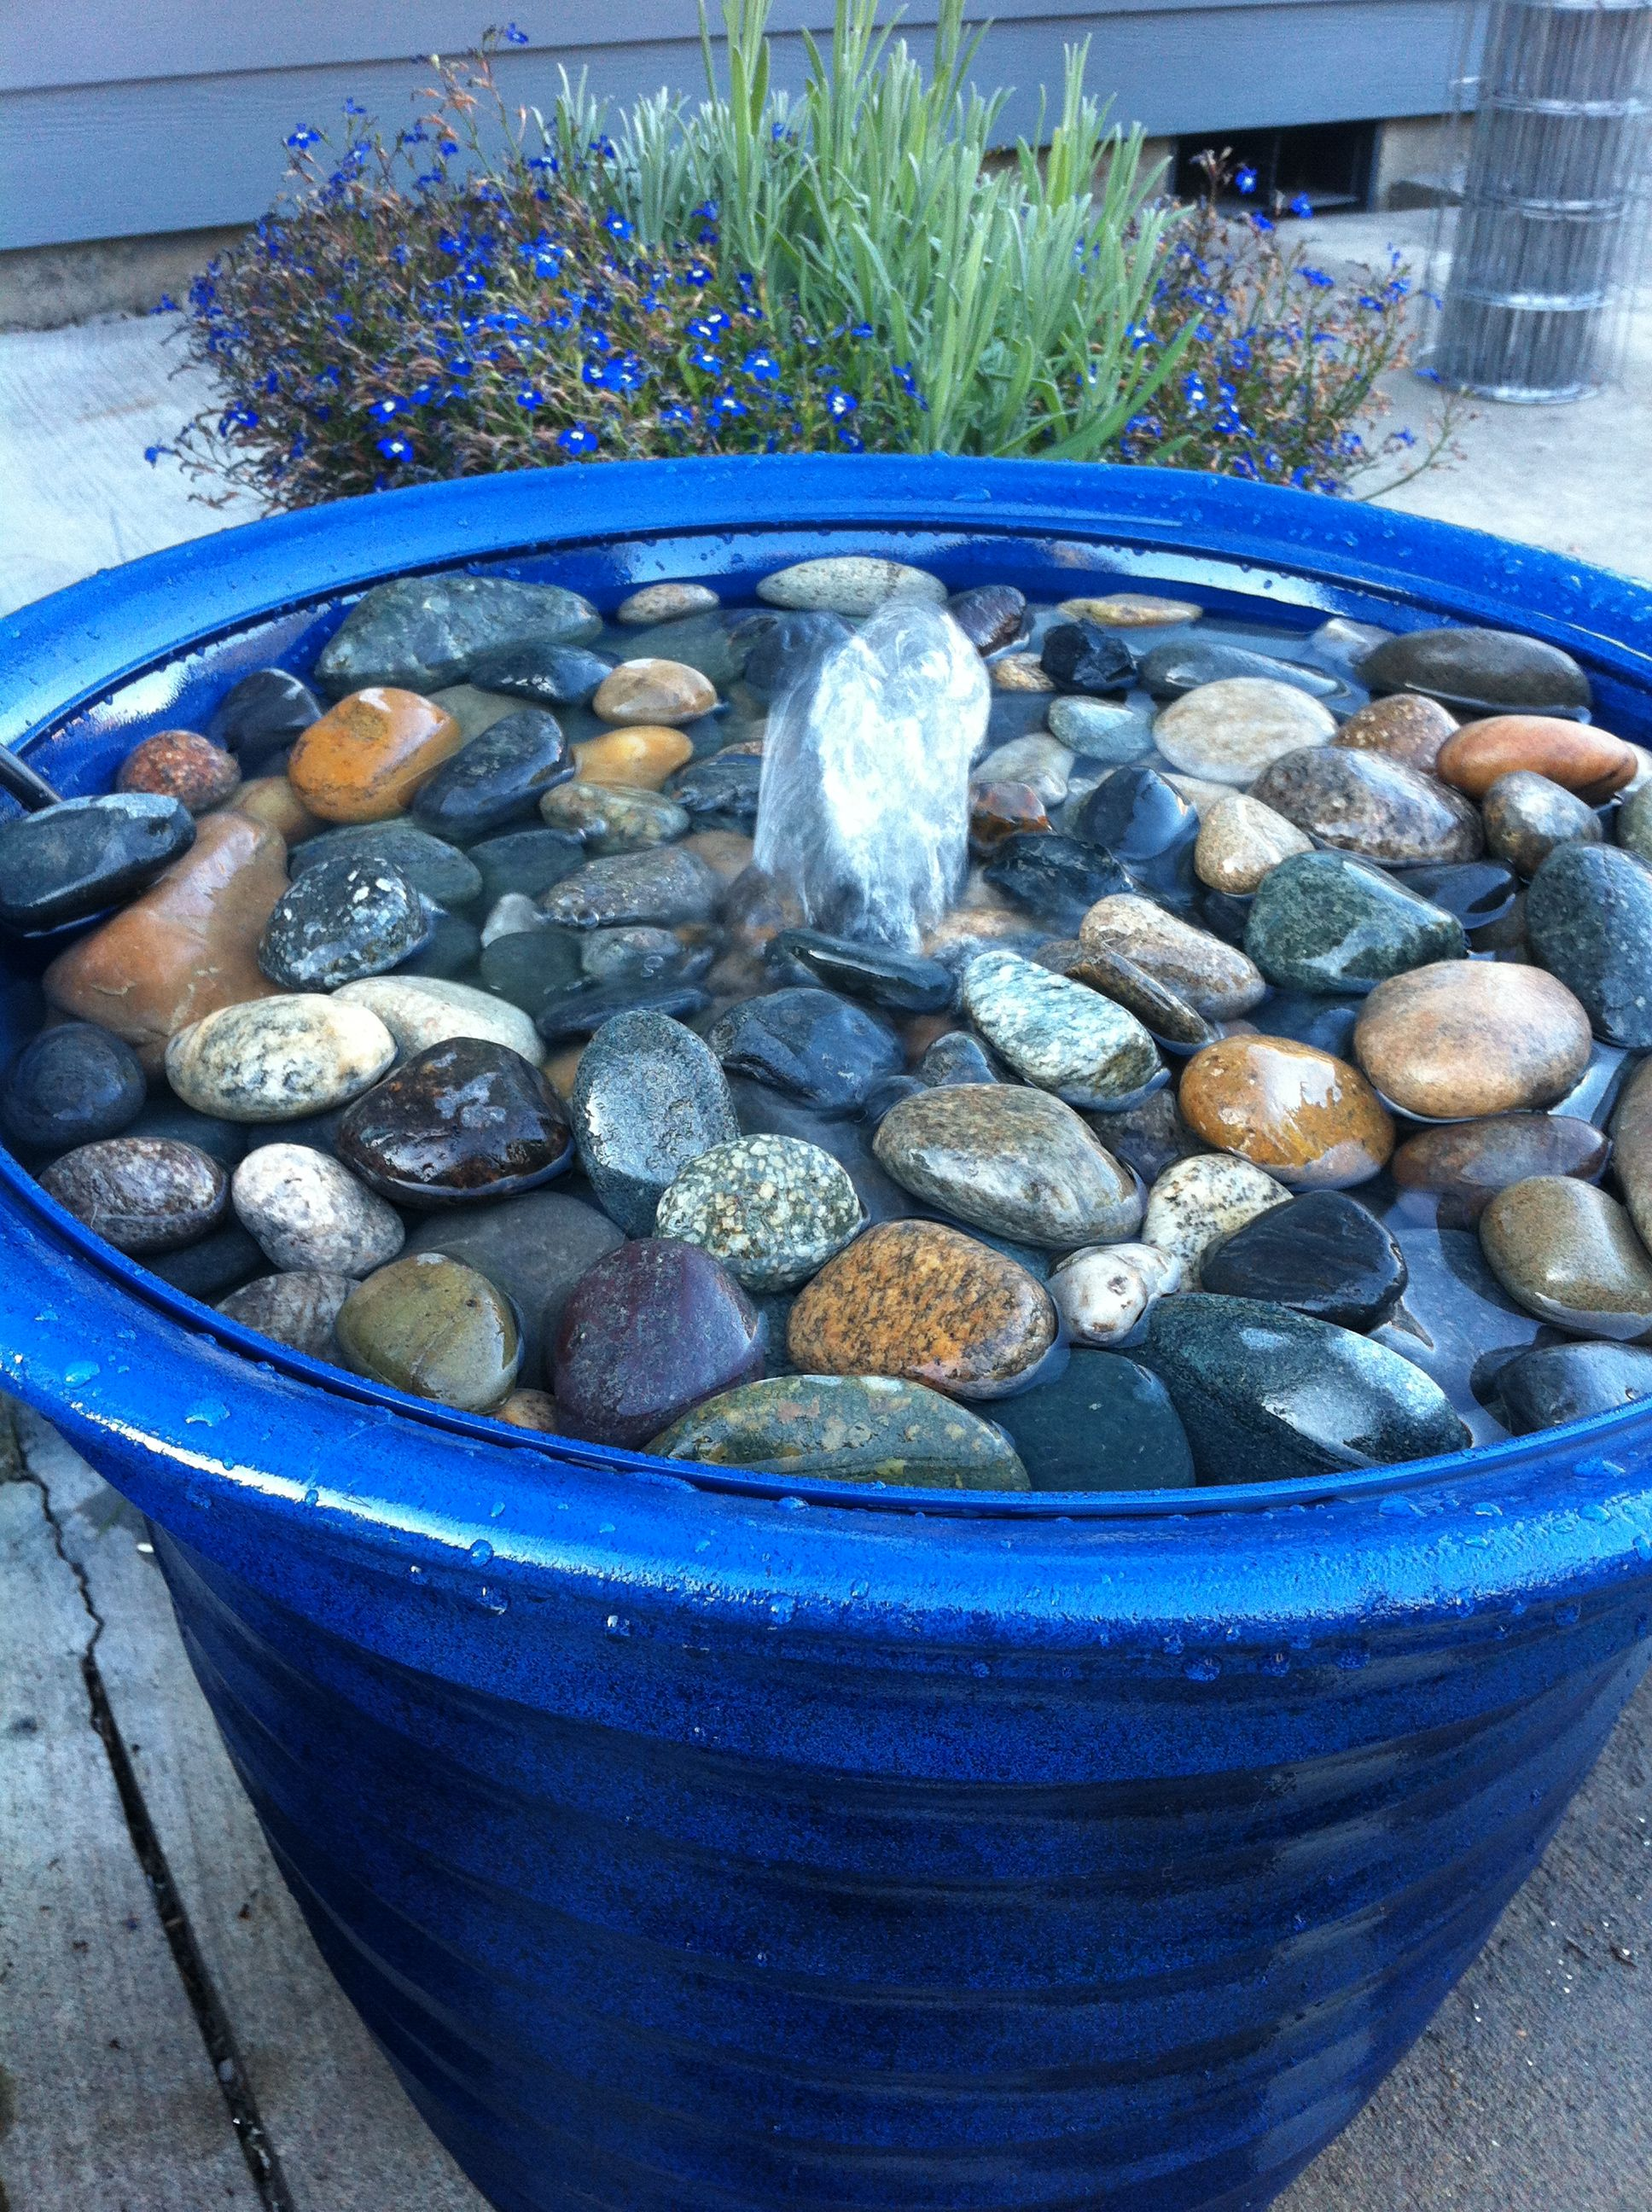 Amazing Water Feature Made With A Water Pump In A 5 Gallon Bucket Inside Of A Larger